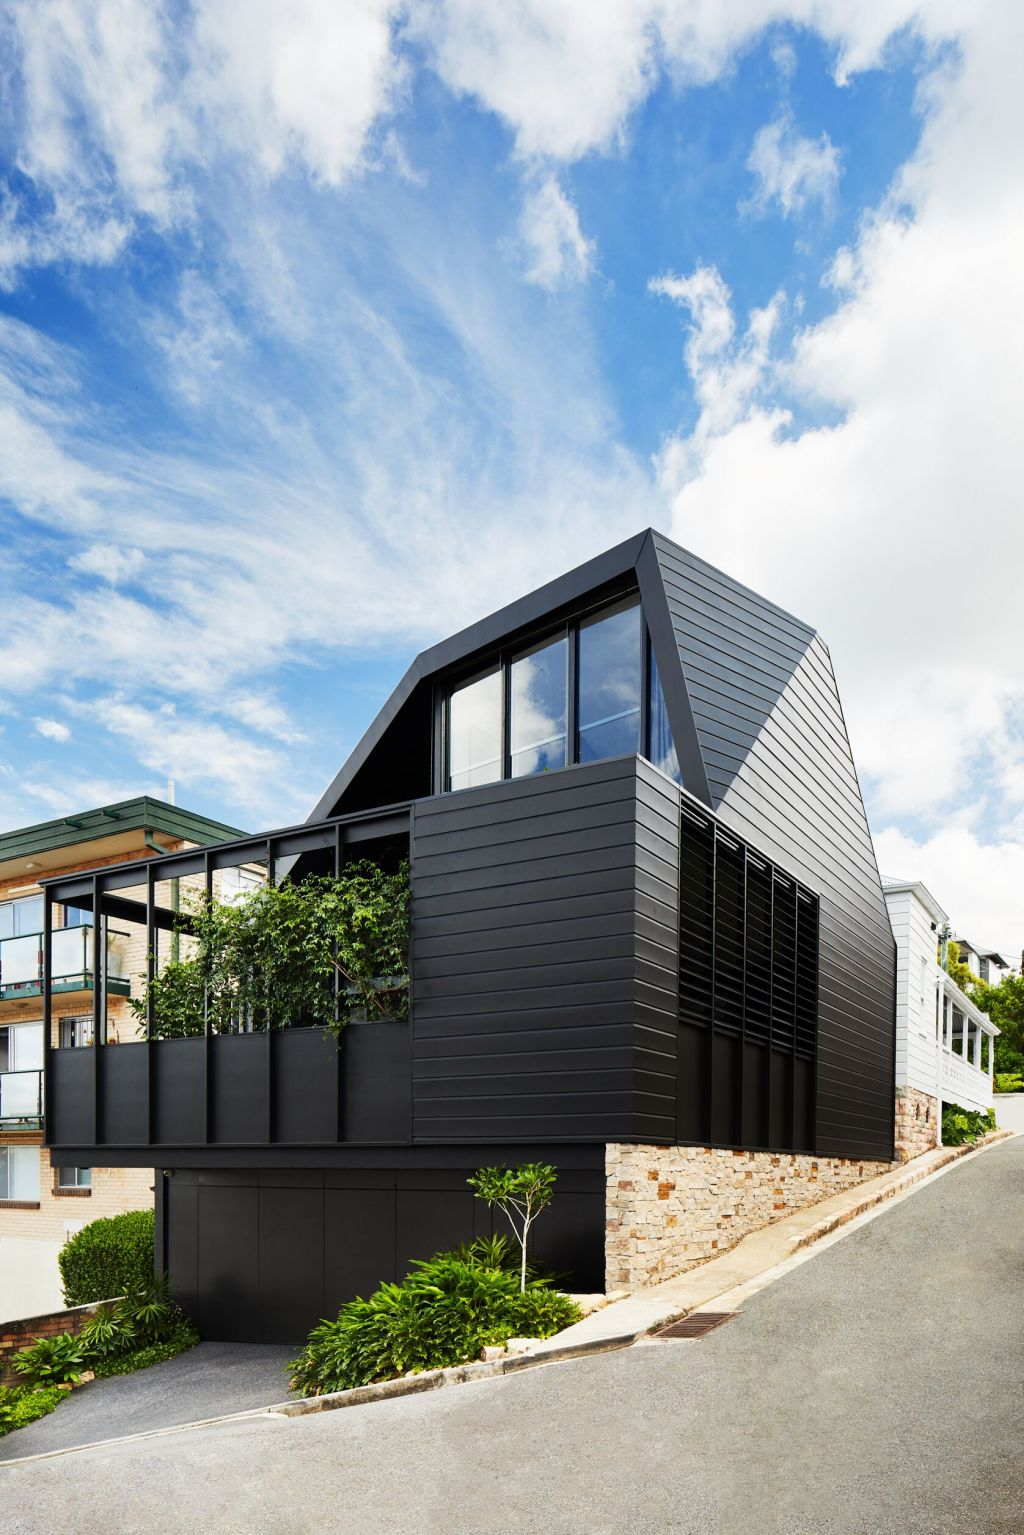 Complete_flip_in_the_extended_programme_of_a_Brisbane_architect_s_home_t2wl2x